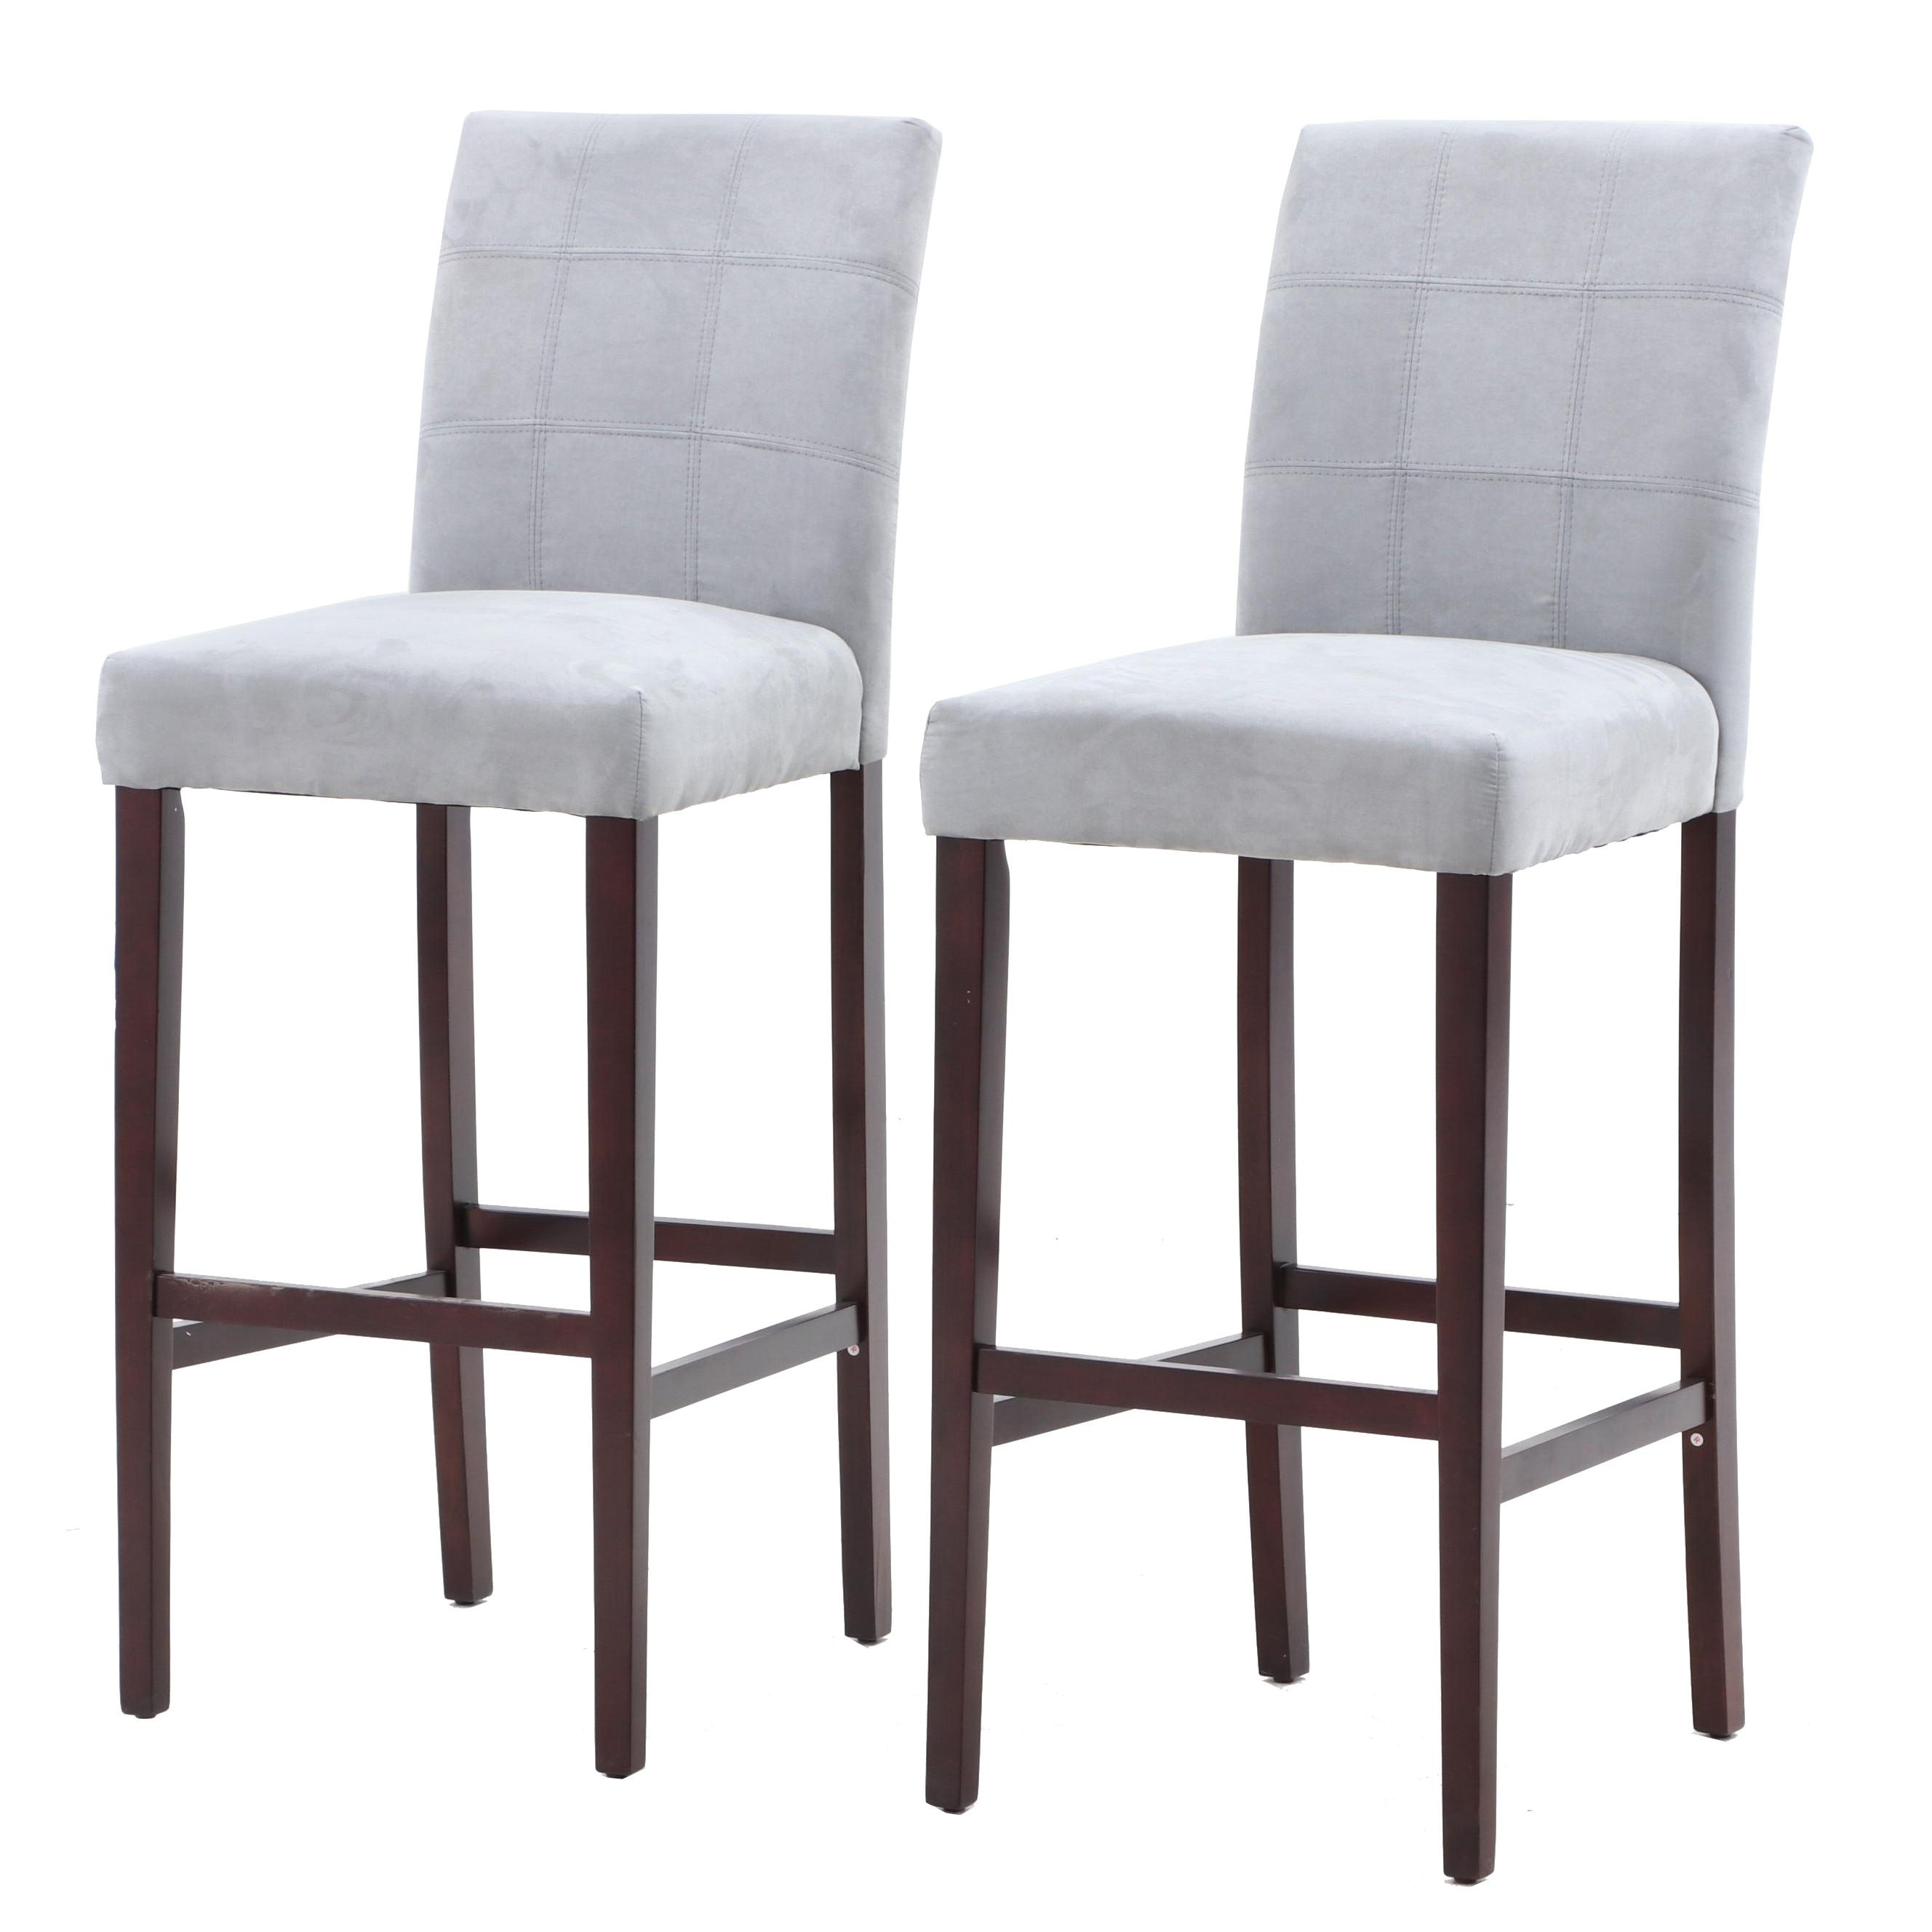 Finley Home Palazzo Microfiber Upholstered Bar Stools